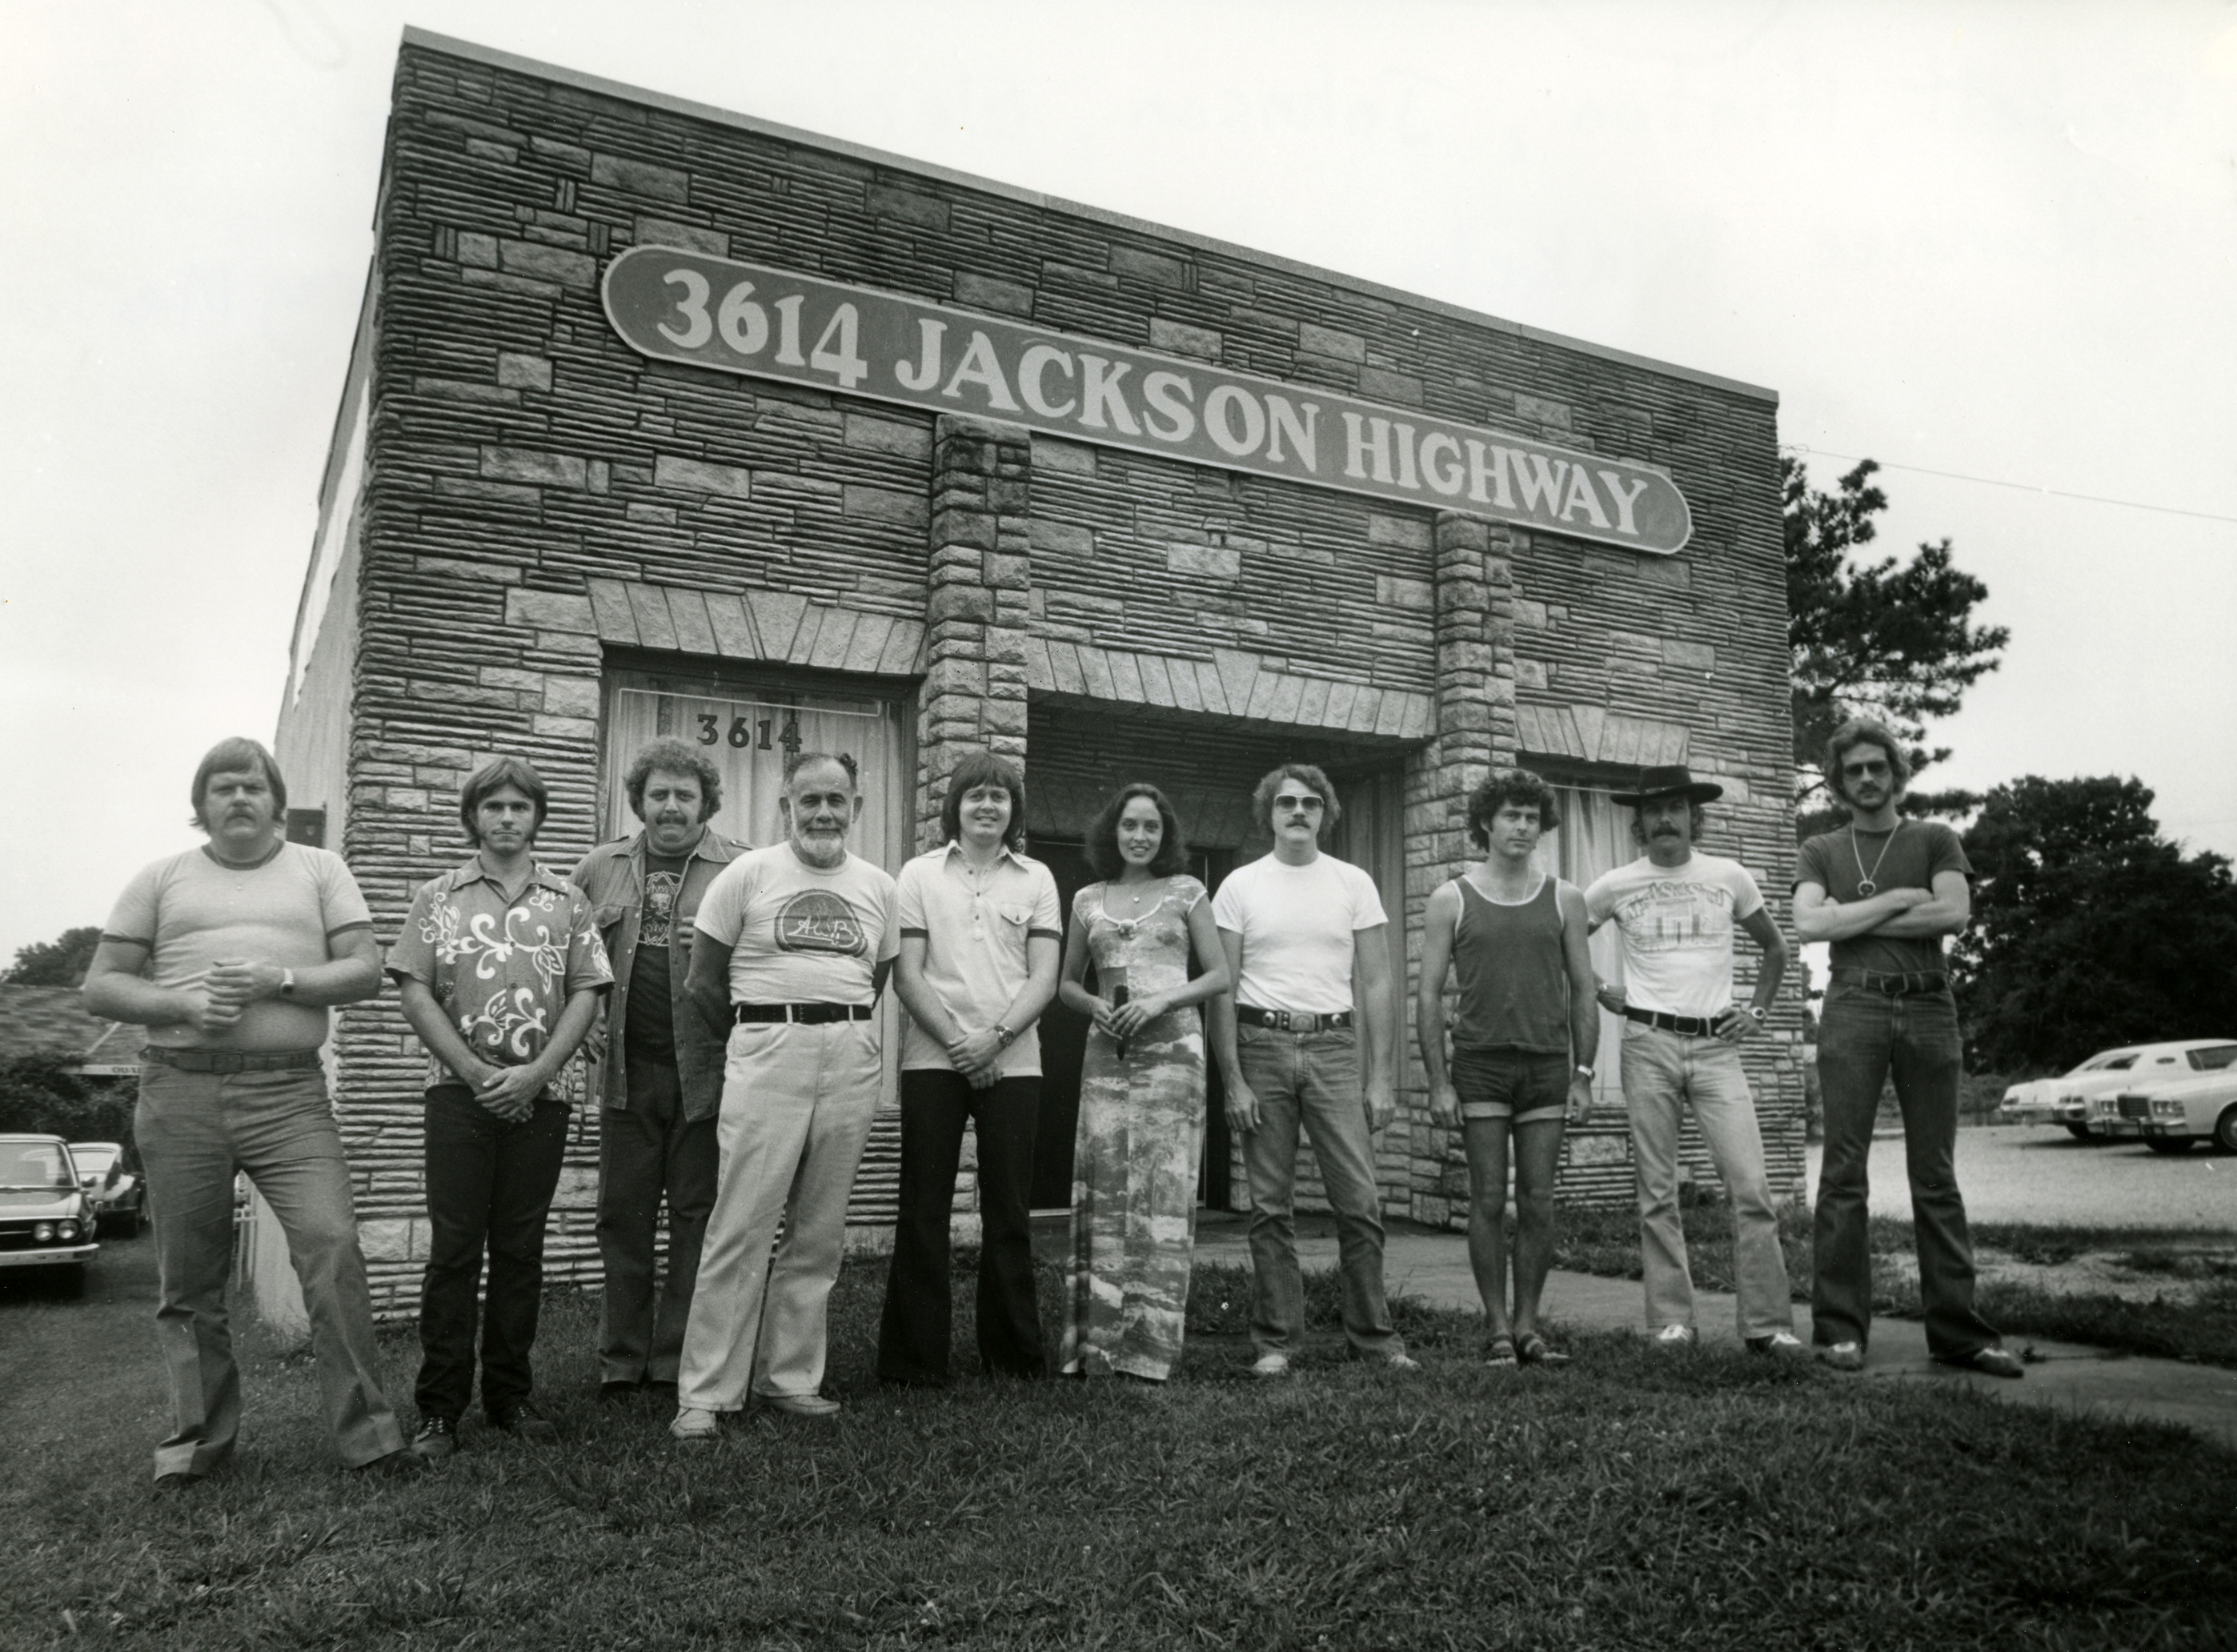 """This undated image released by Magnolia Pictures shows a group of studio musicians known as The Swampers at the Muscle Shoals Sound Studio in Muscle Shoals, Ala., a subject of the documentary """"Muscle Shoals.""""  Jimmy Iovine and Luke Wood were so moved by the """"Muscle Shoals"""" documentary, they're putting up money to make sure the unique spirit of the Alabama music haven lives on. The Beats Electronics officials are starting a program to refurbish and upgrade two historic studios in Muscle Shoals _ FAME Recording Studios and Muscle Shoals Sound Studio _ then will install education programs to train a new generation of producers, audio engineers and musicians. North Alabama remains a fertile musical proving ground, with a thriving scene that includes Jason Isbell, Alabama Shakes and John Paul White, one half of The Civil Wars. (AP Photo/Magnolia Pictures)"""